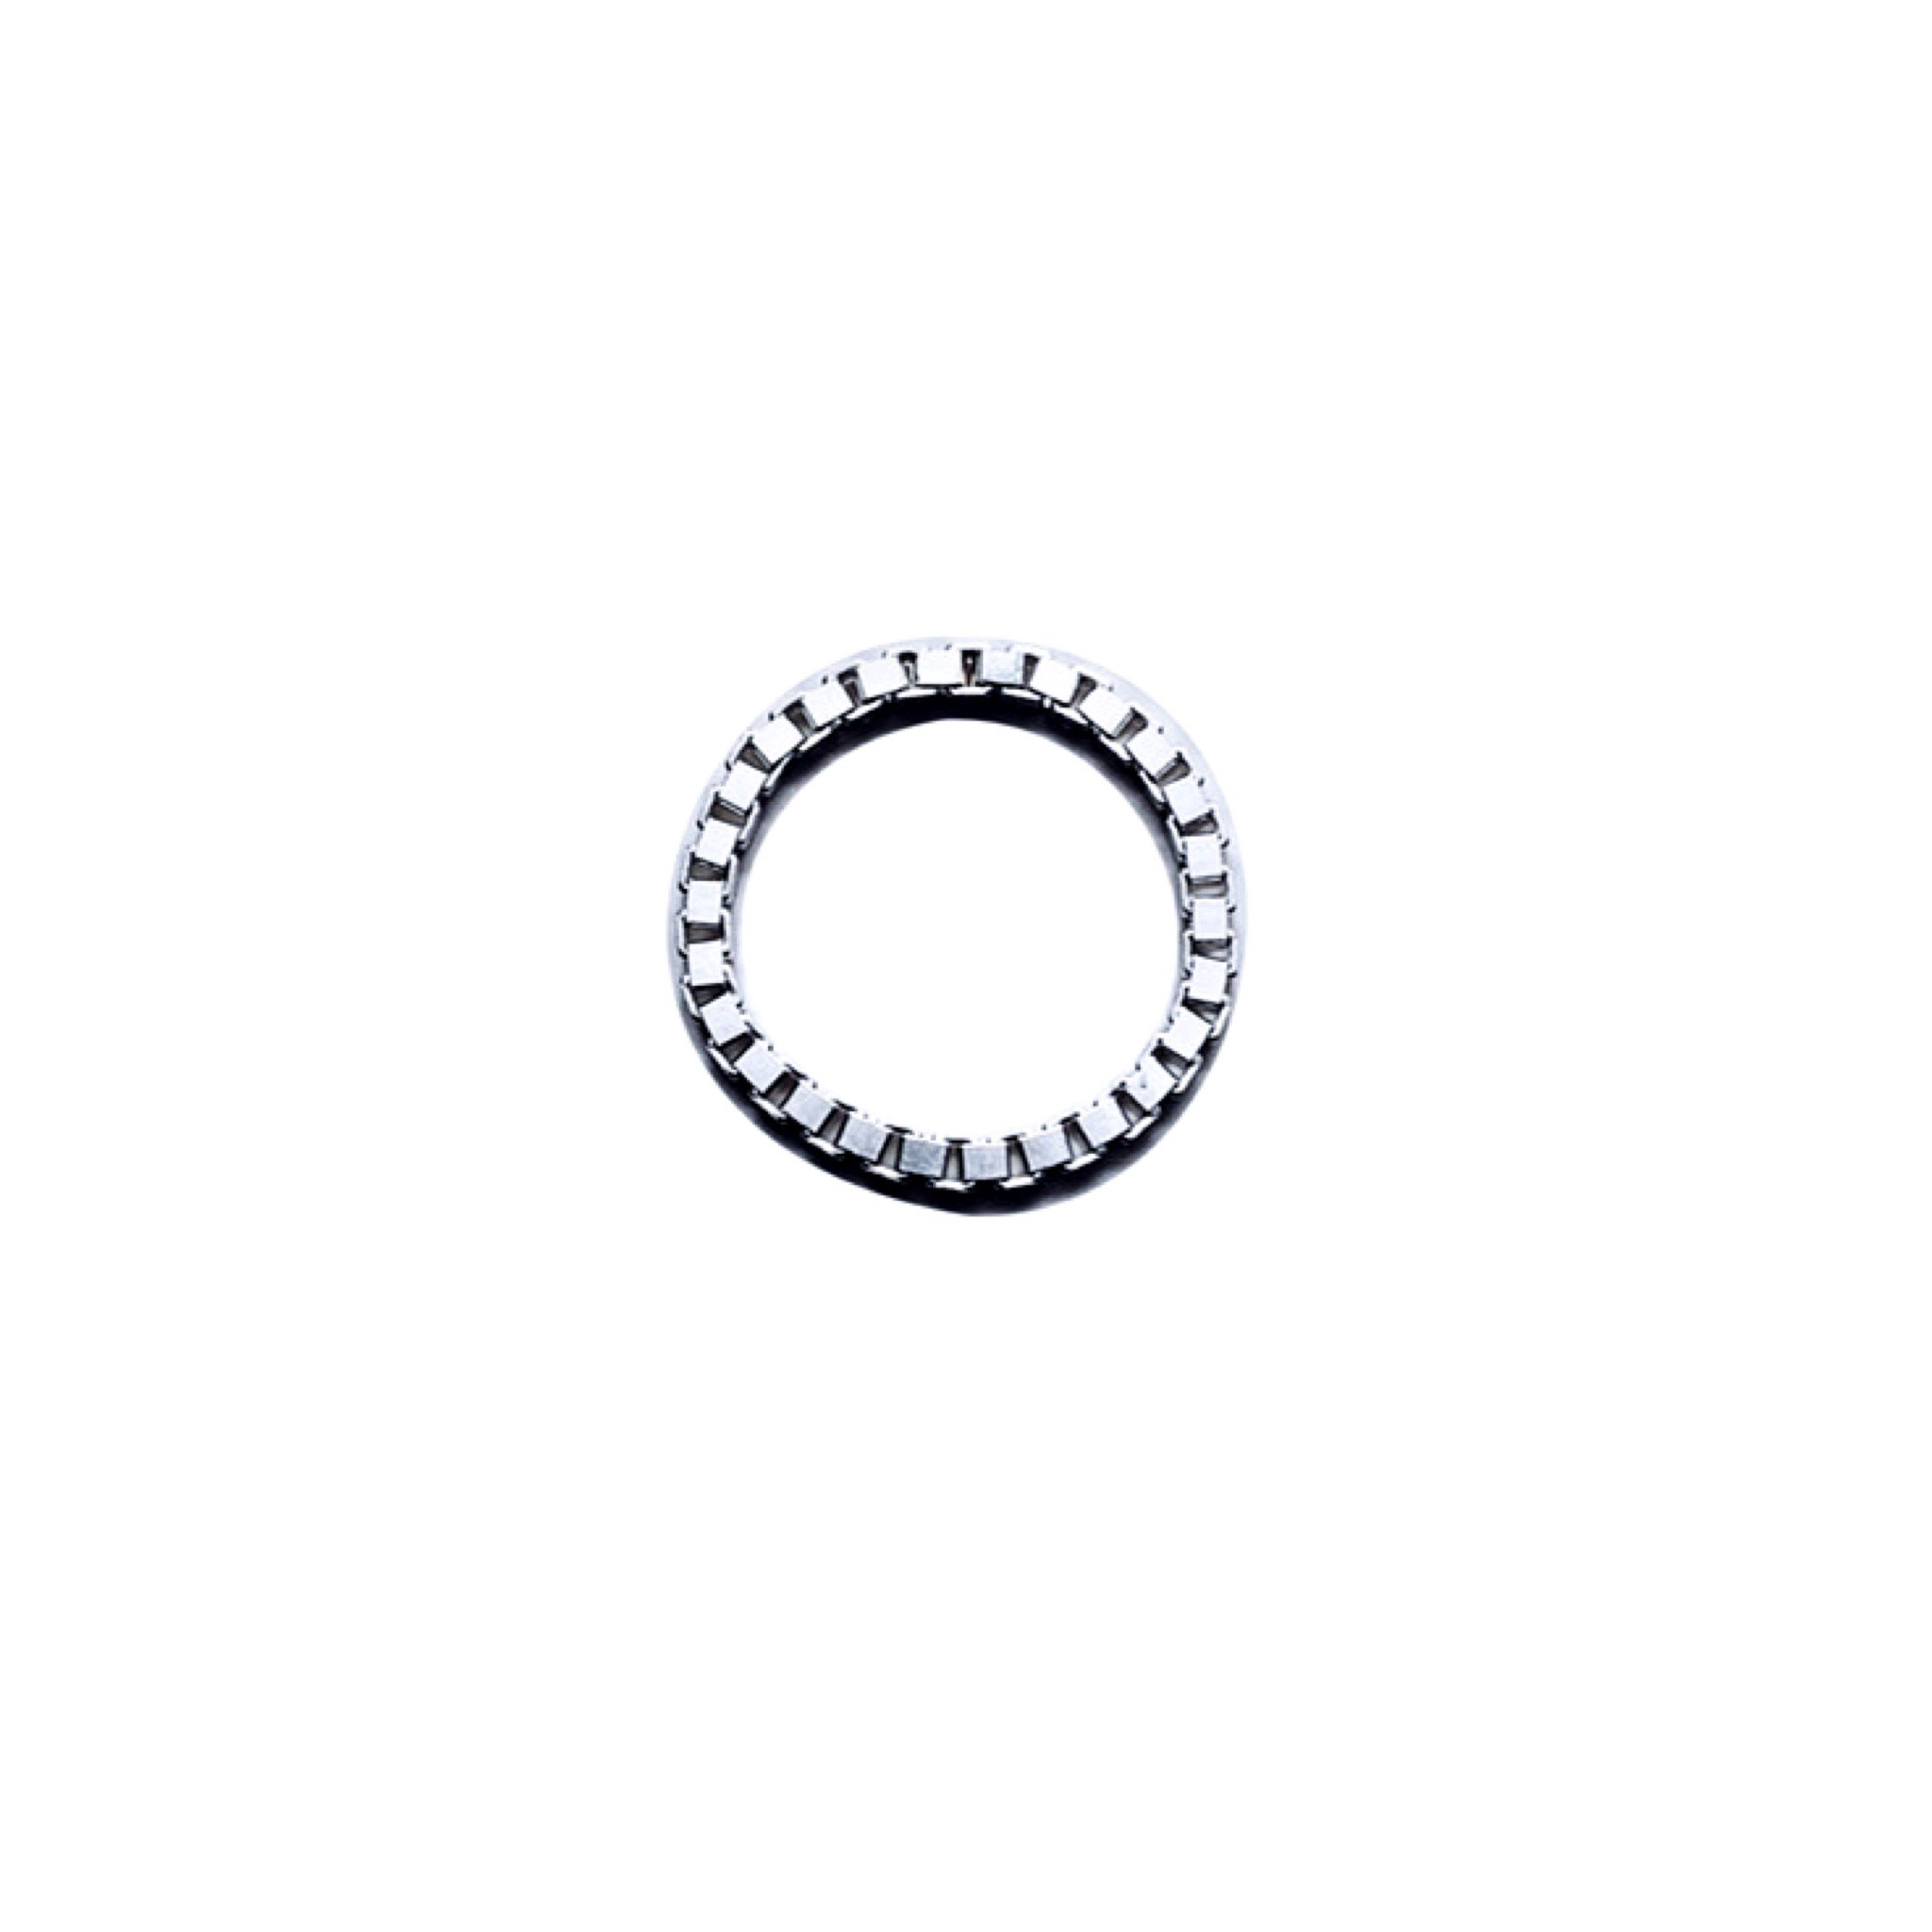 MARTINE ALI-BOX RING SILVER925